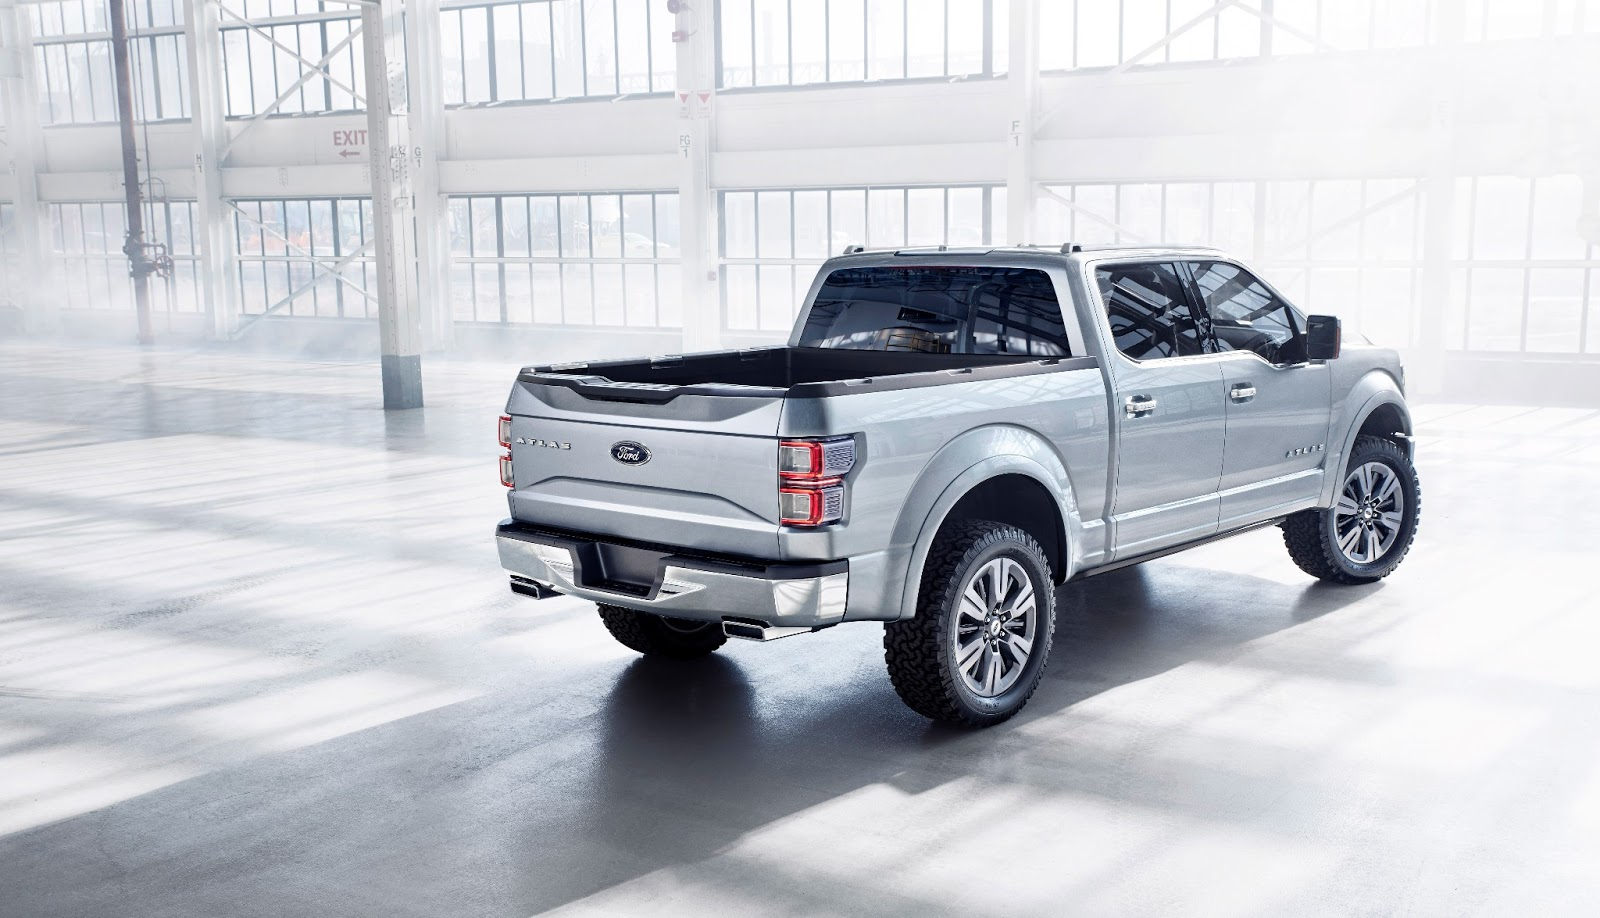 new ford f 150 for 2015 atlas concept cars life cars fashion lifestyle blog. Black Bedroom Furniture Sets. Home Design Ideas